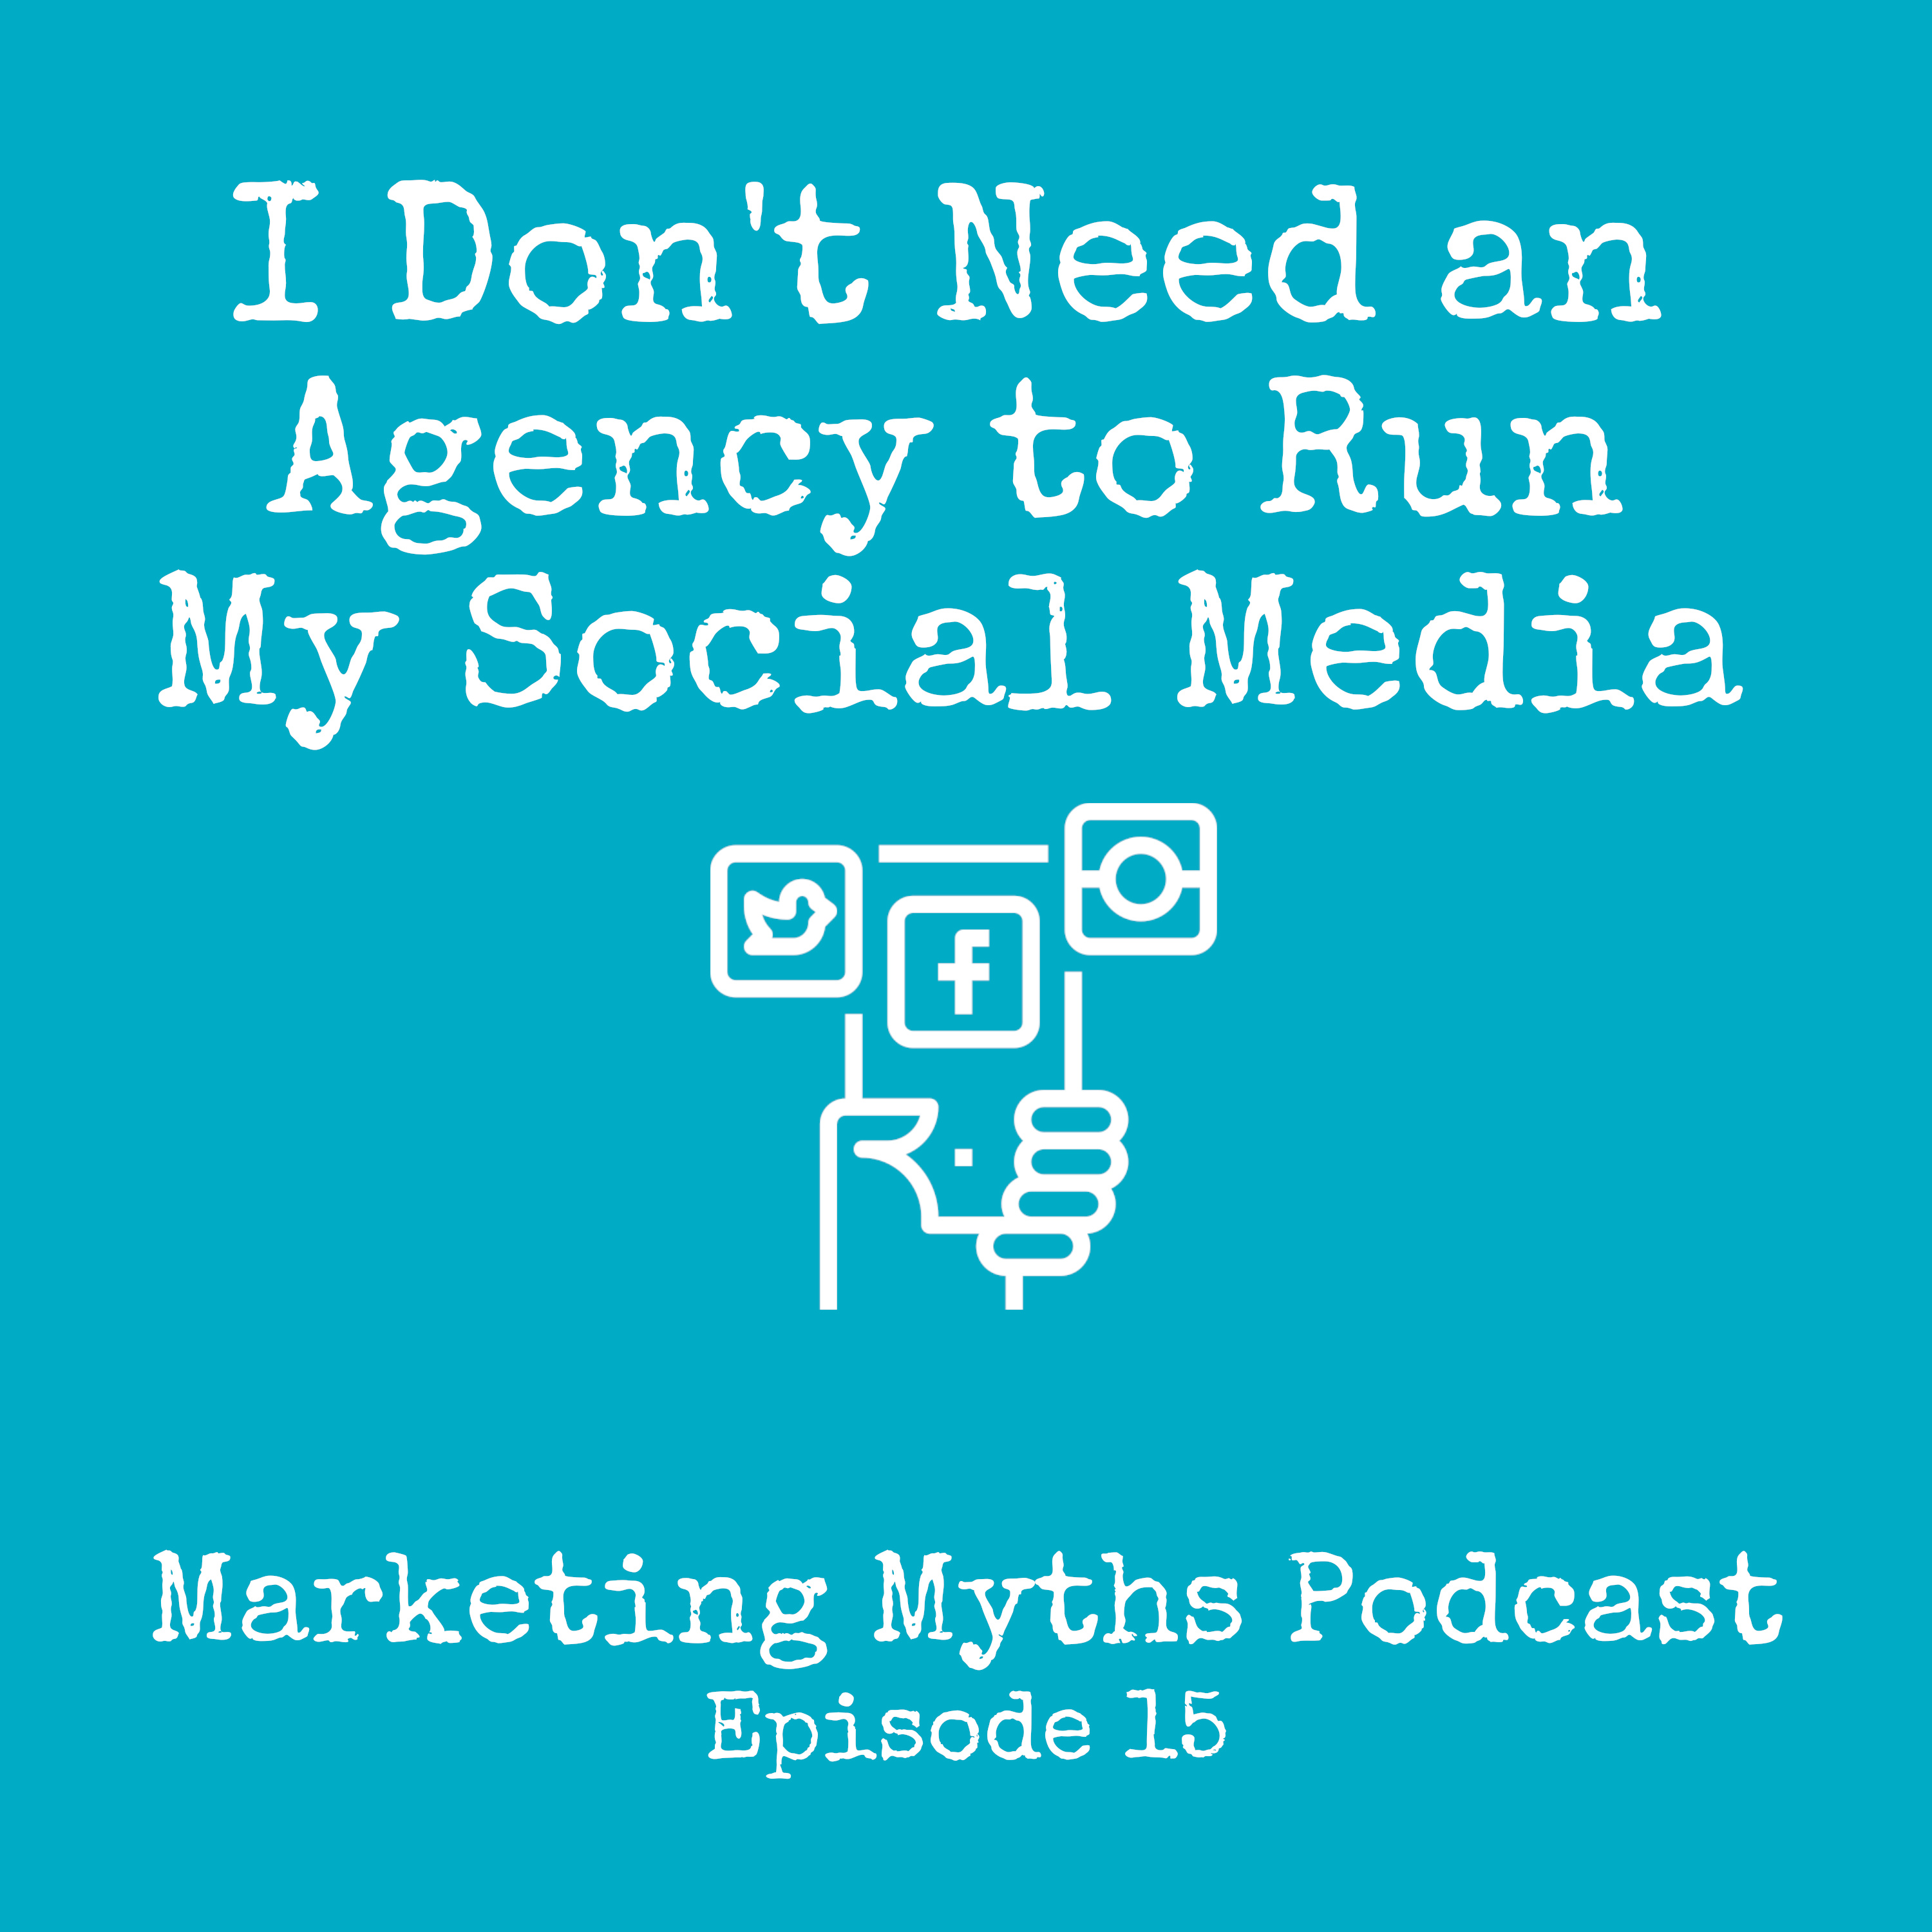 I Don't Need an Agency to Run My Social Media